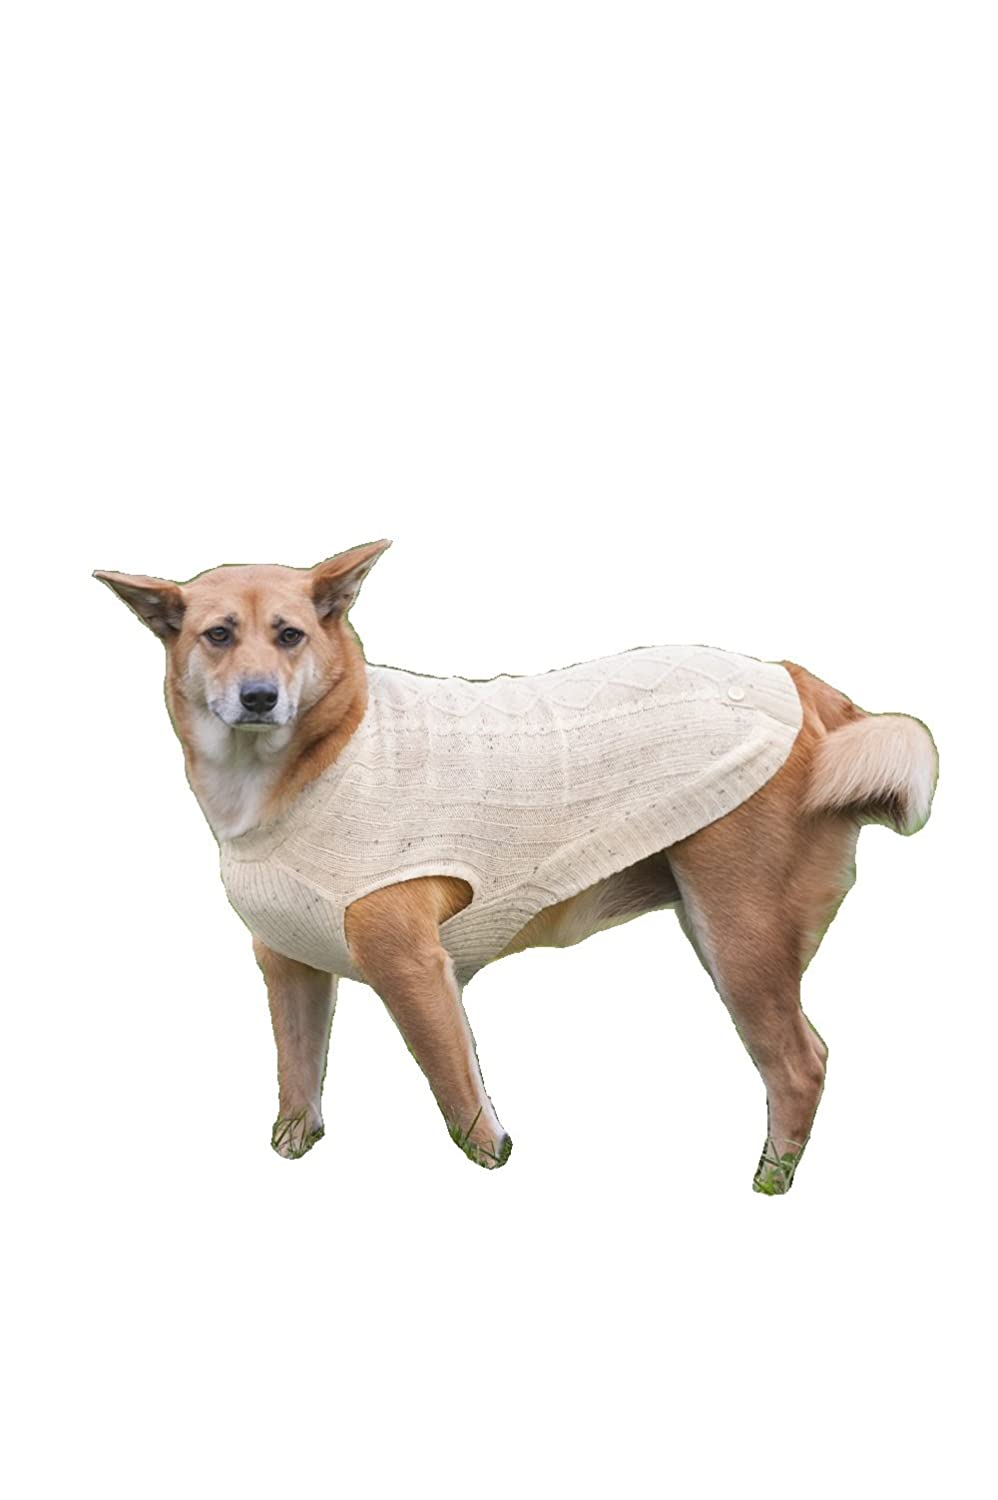 Fashion Pet Outdoor Dog Donegal Cable Sweater, Large, Cream